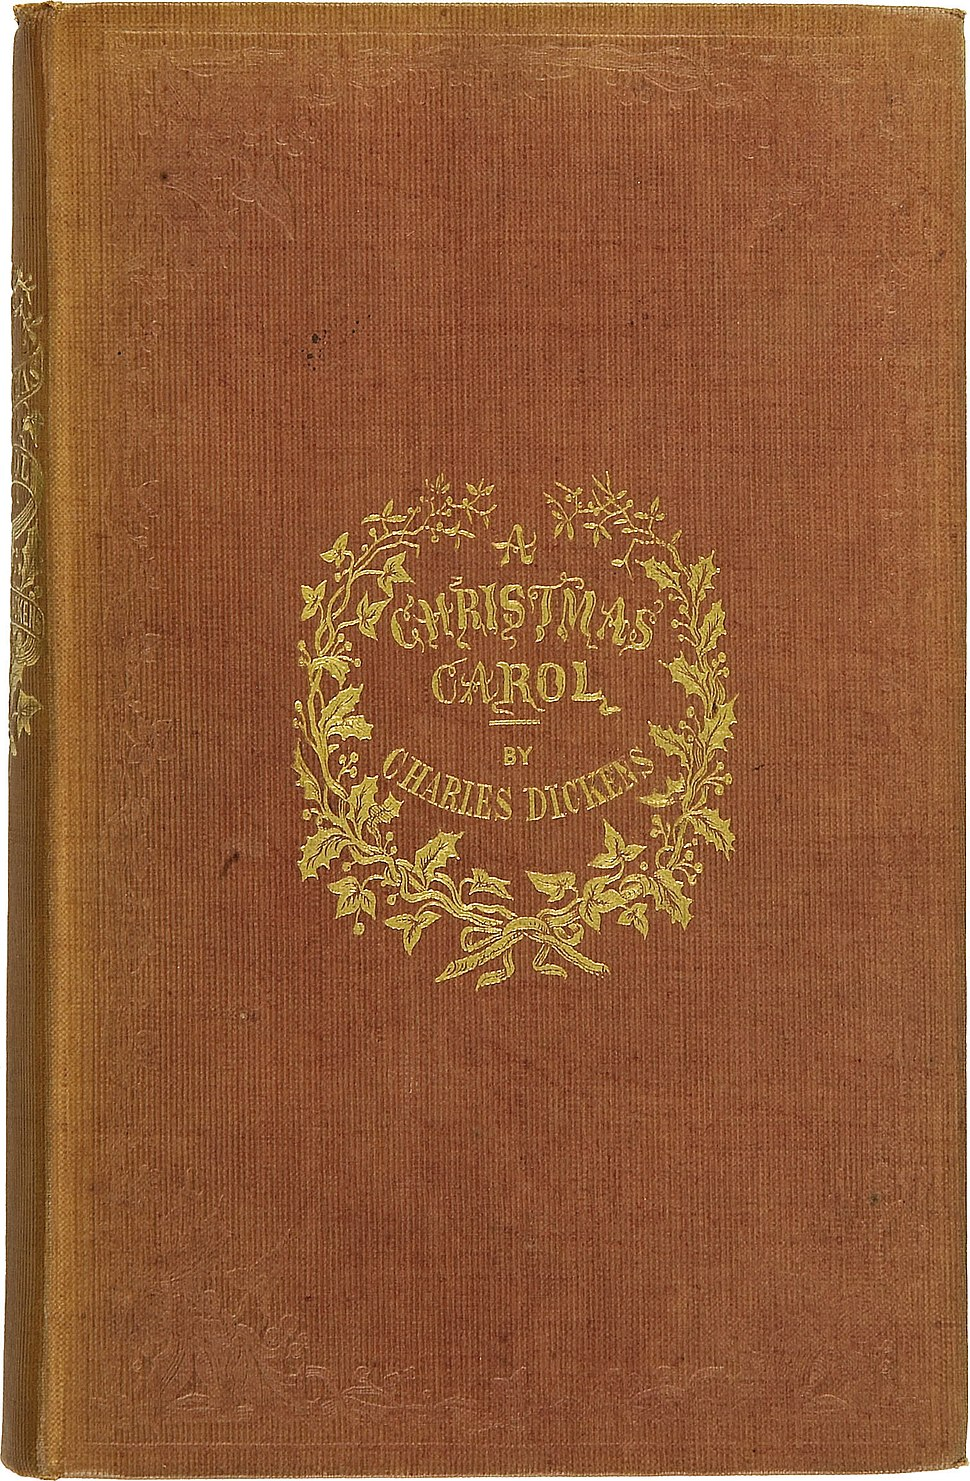 """Brown book cover bearing the words """"A Christmas Carol by Charles Dickens"""" in gold."""